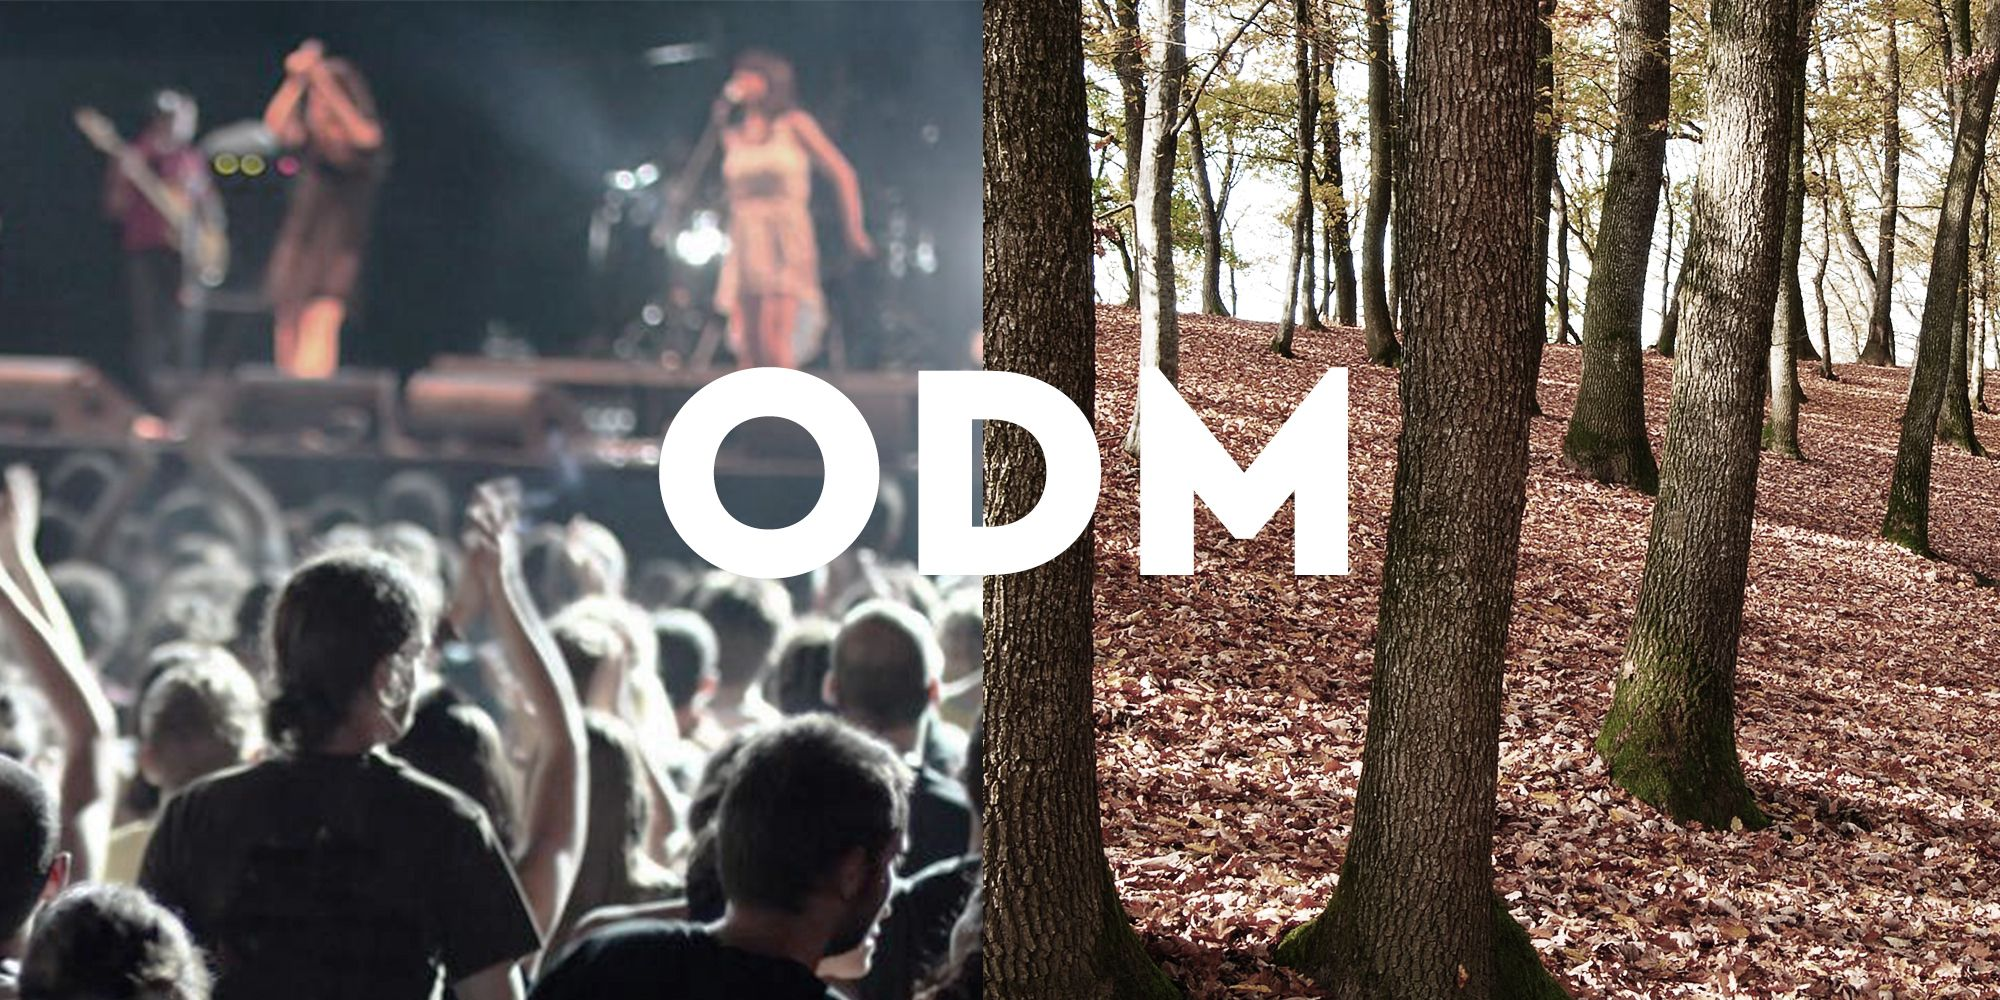 Outdoorsy Musicophiles: Alt/Indie Music & Hiking Fans (NYC)